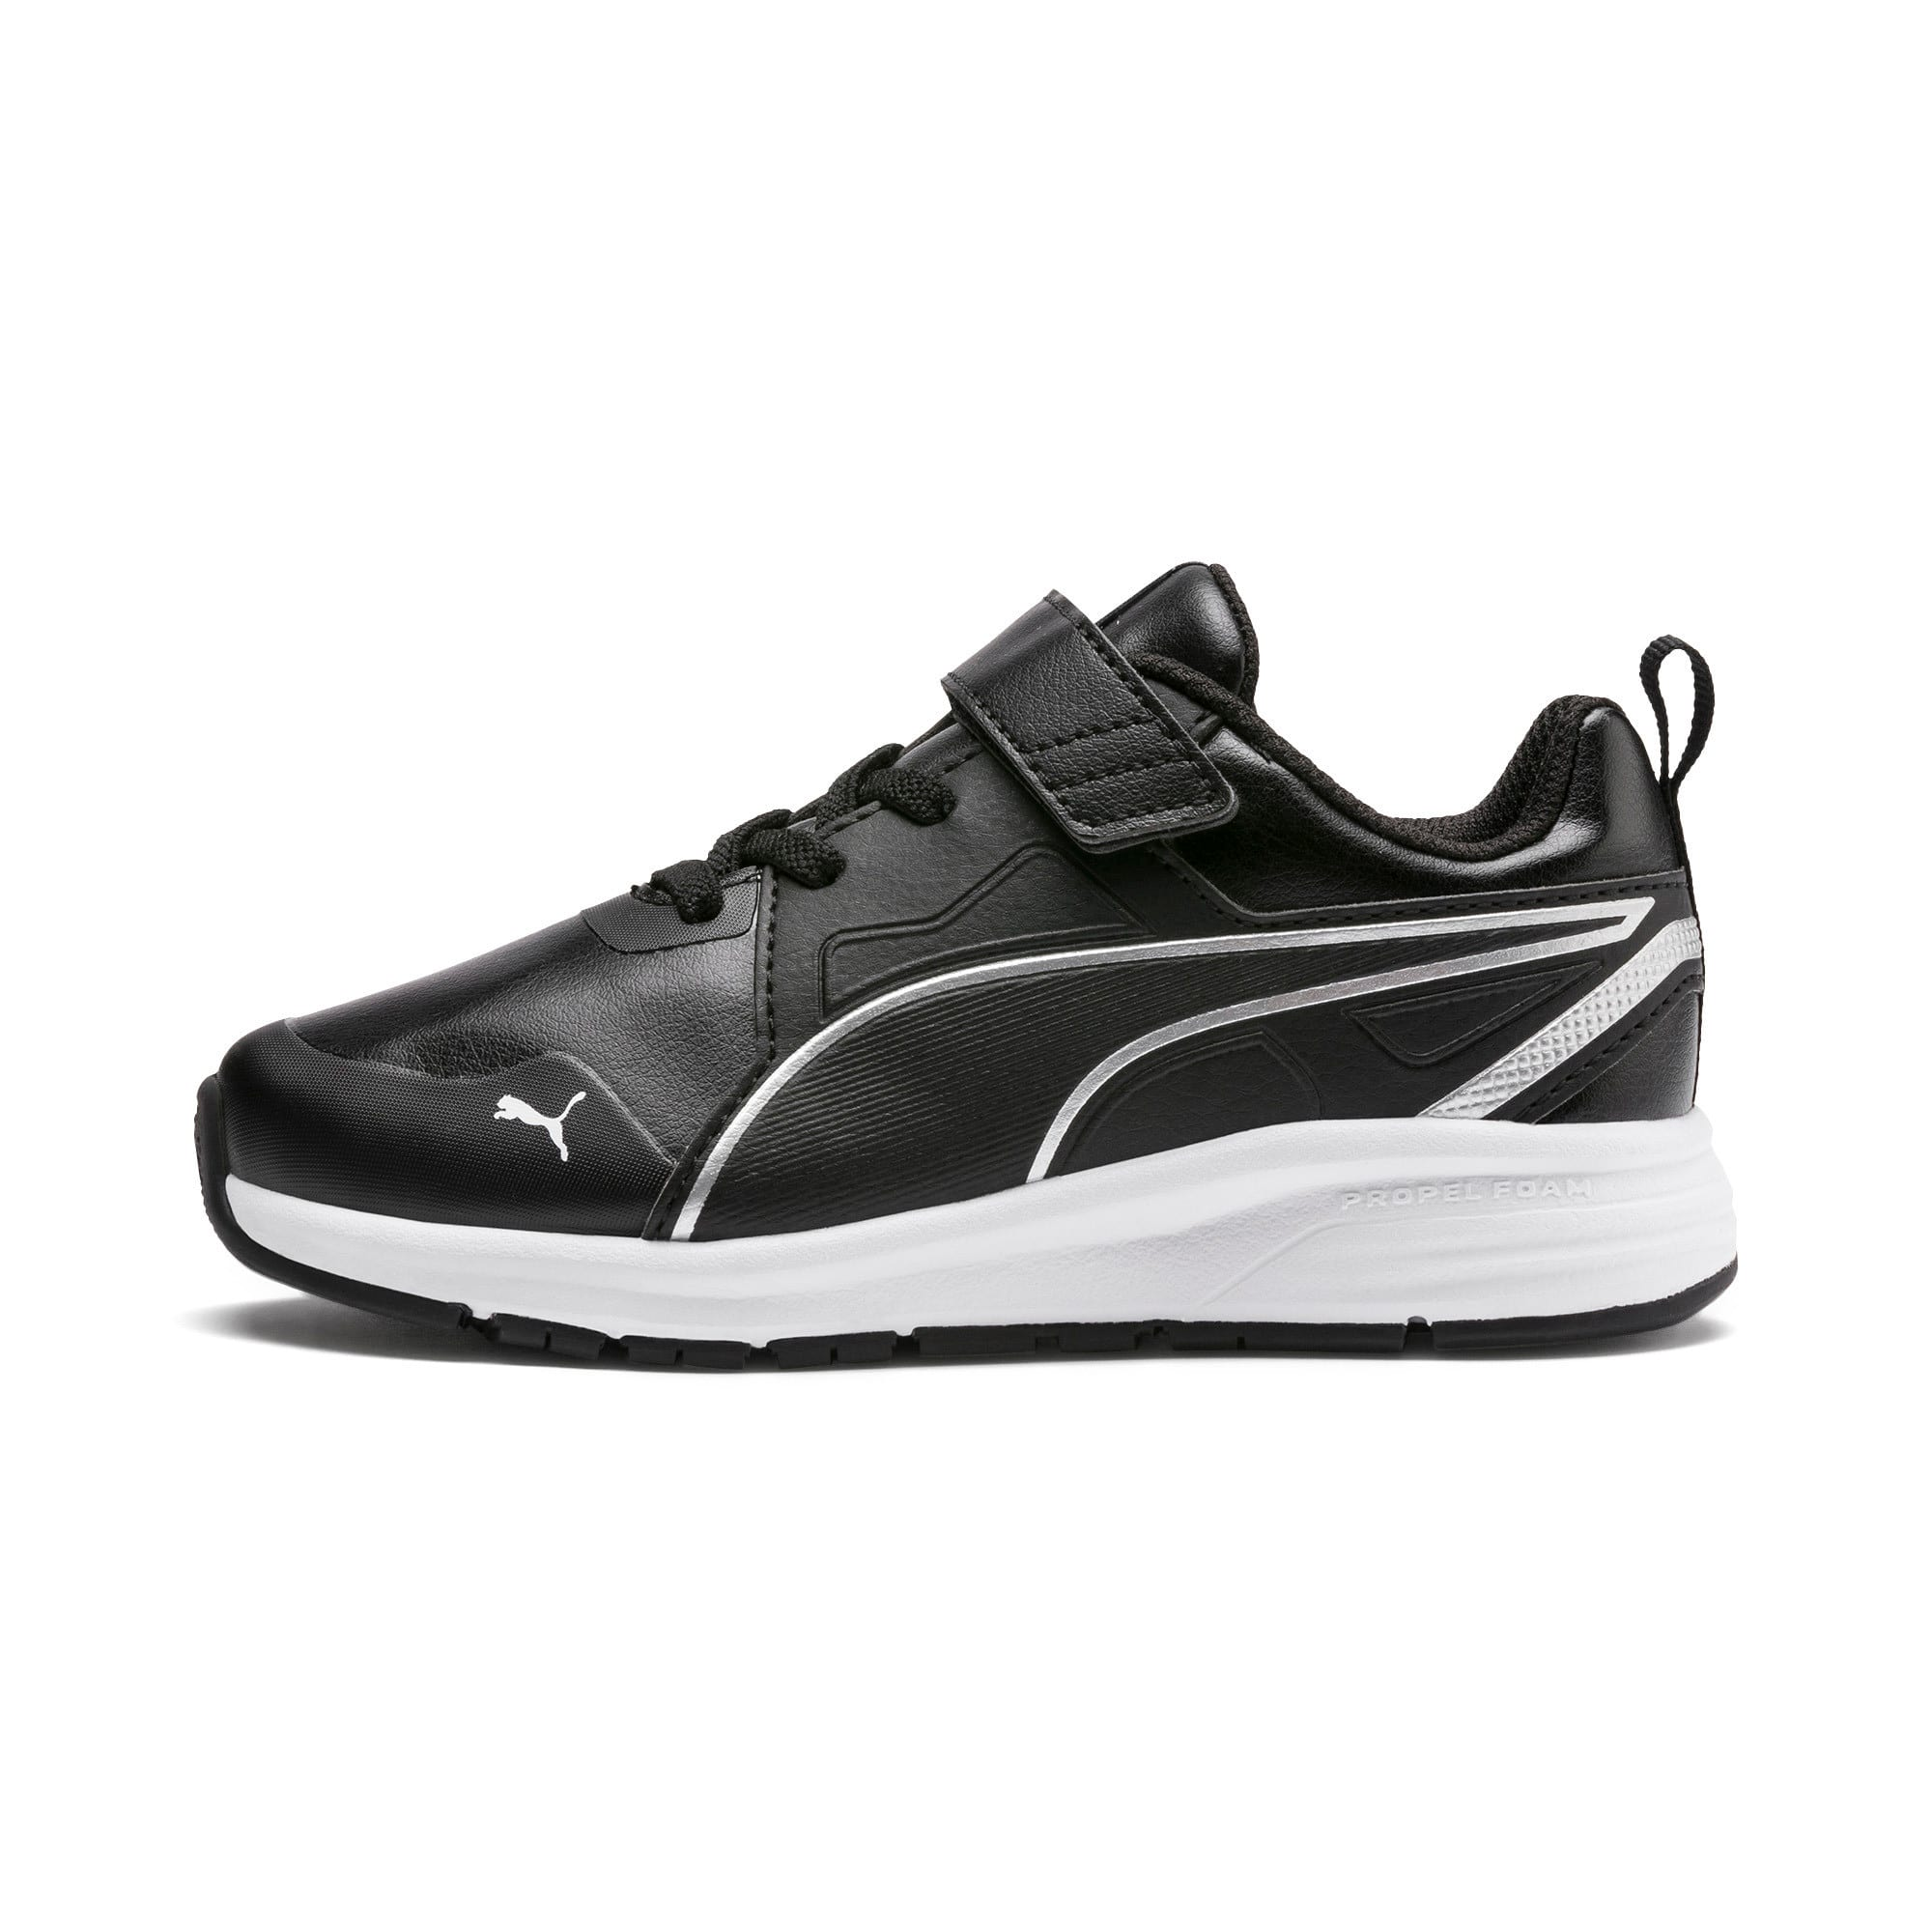 Thumbnail 1 of Pure Jogger SL Kids' Trainers, Puma Black-Puma Silver-White, medium-IND